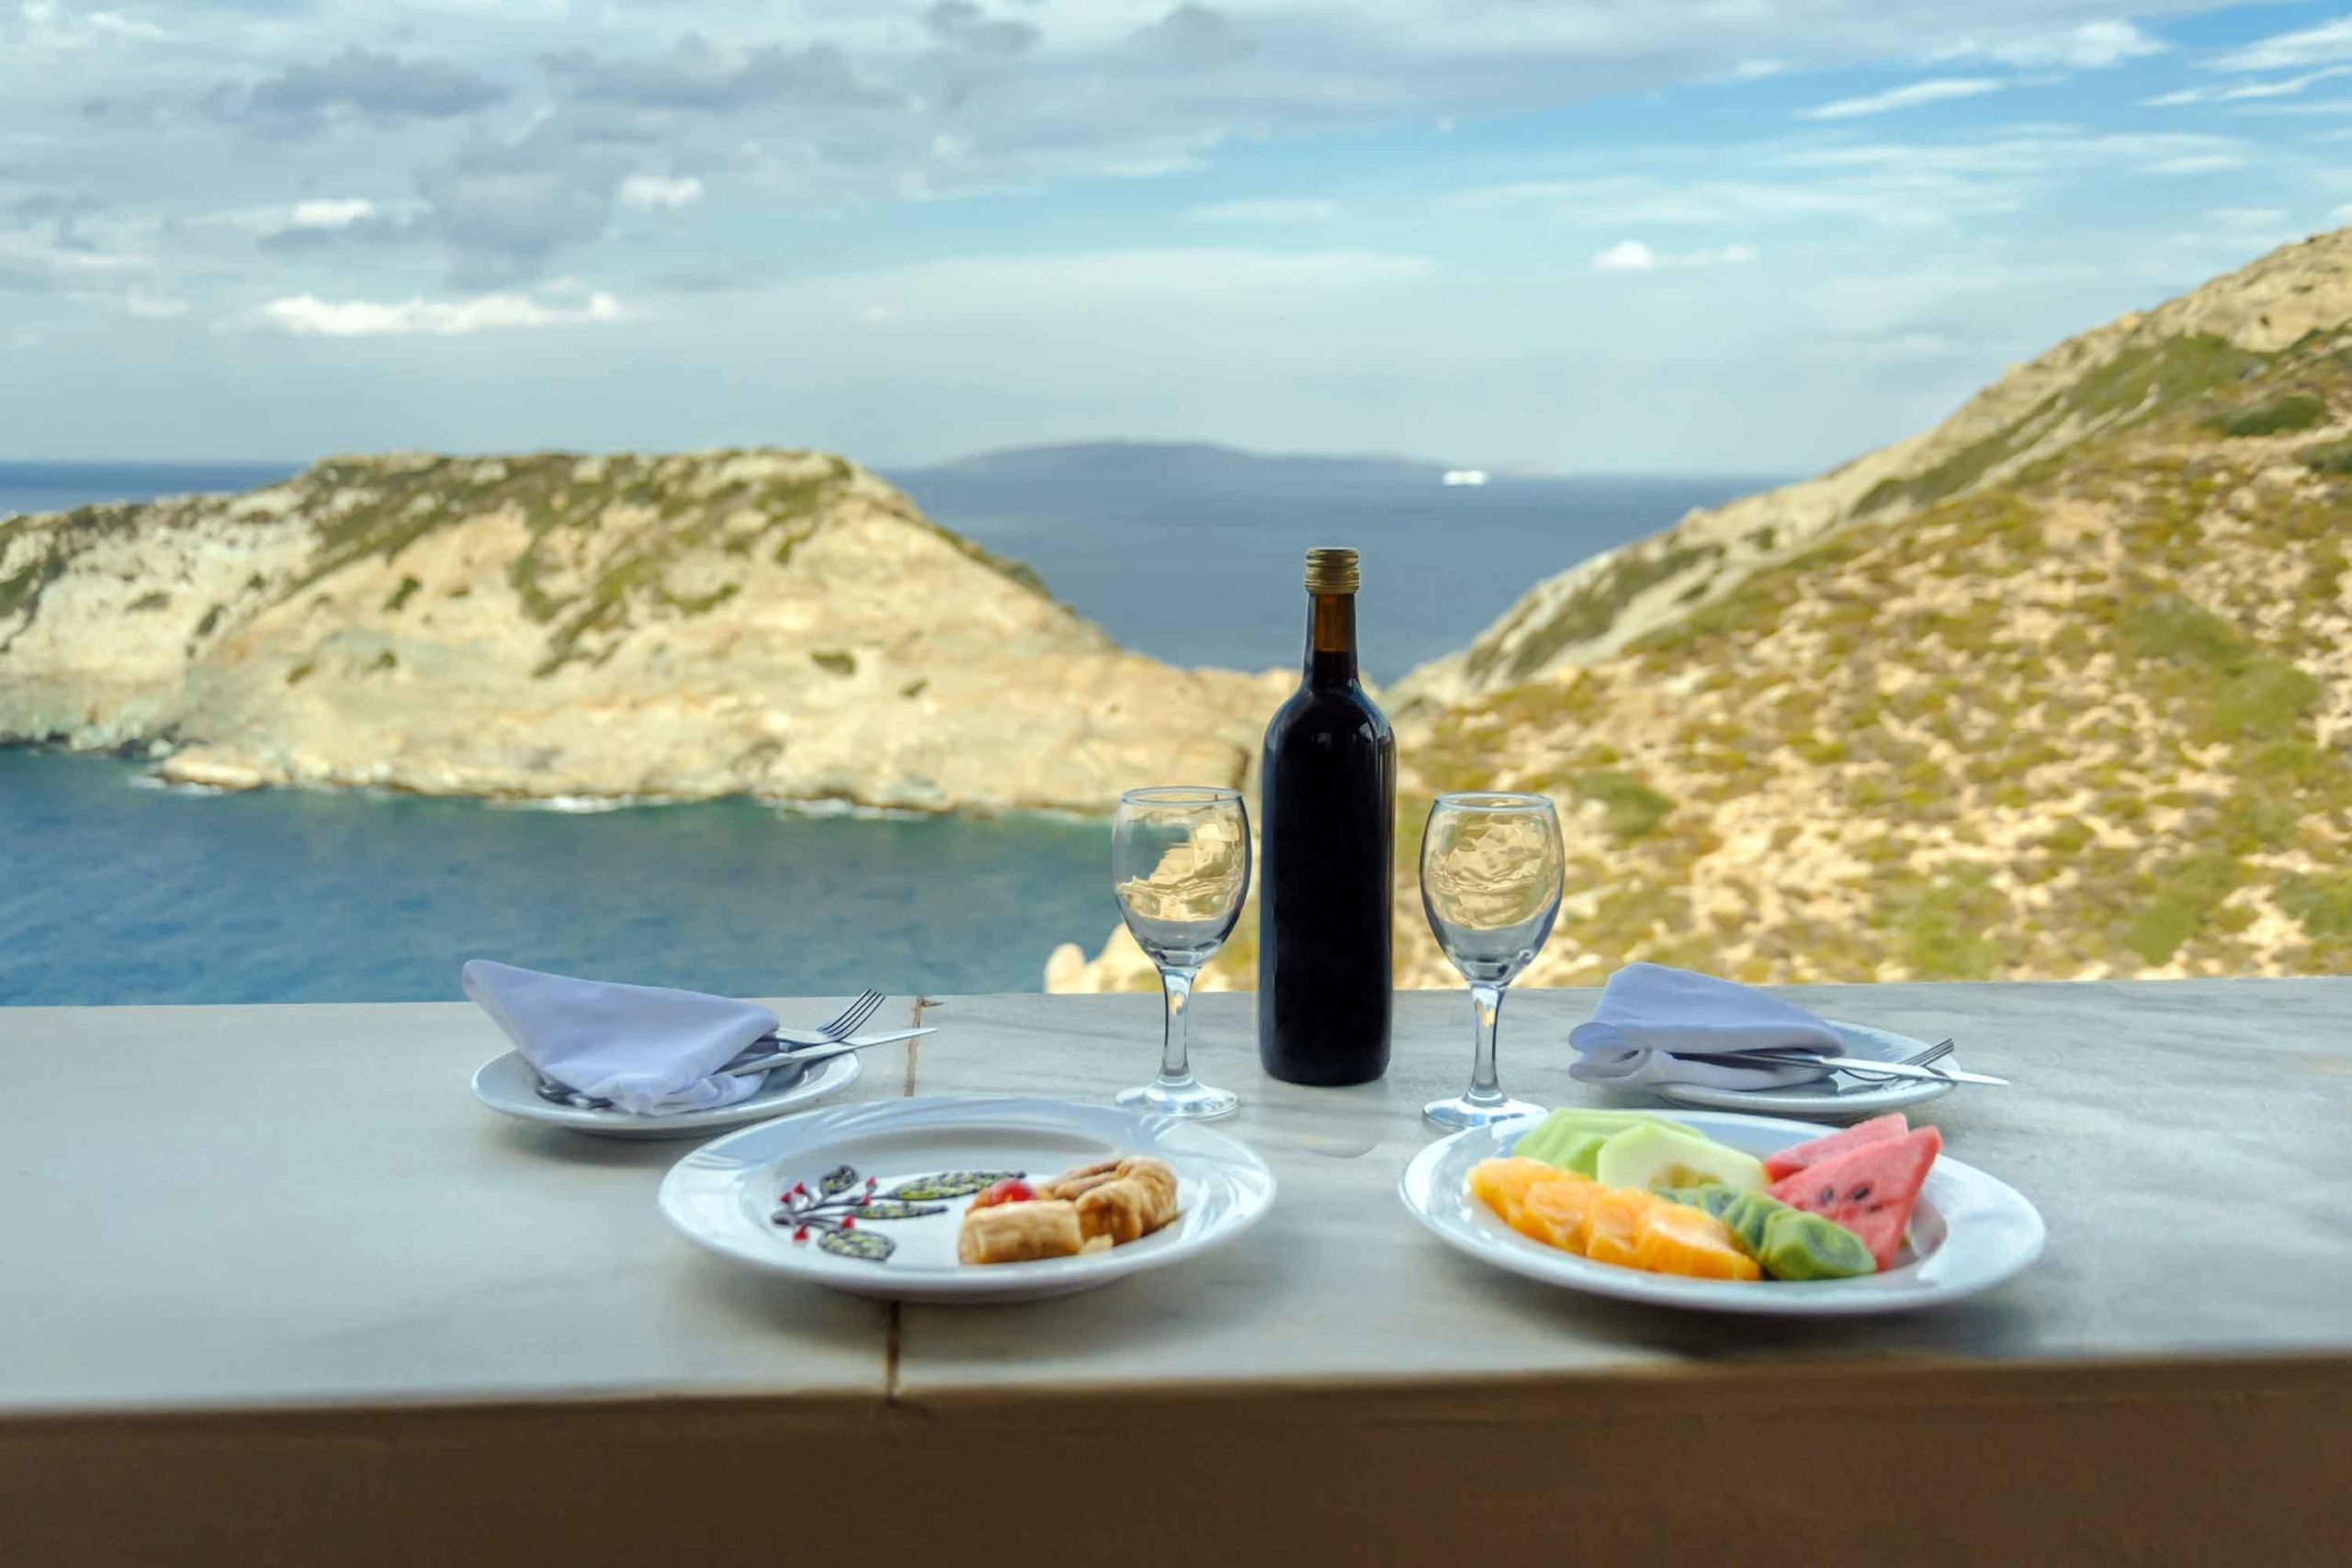 Canva---Wine-and-food-against-the-backdrop-of-the-sea-(1)